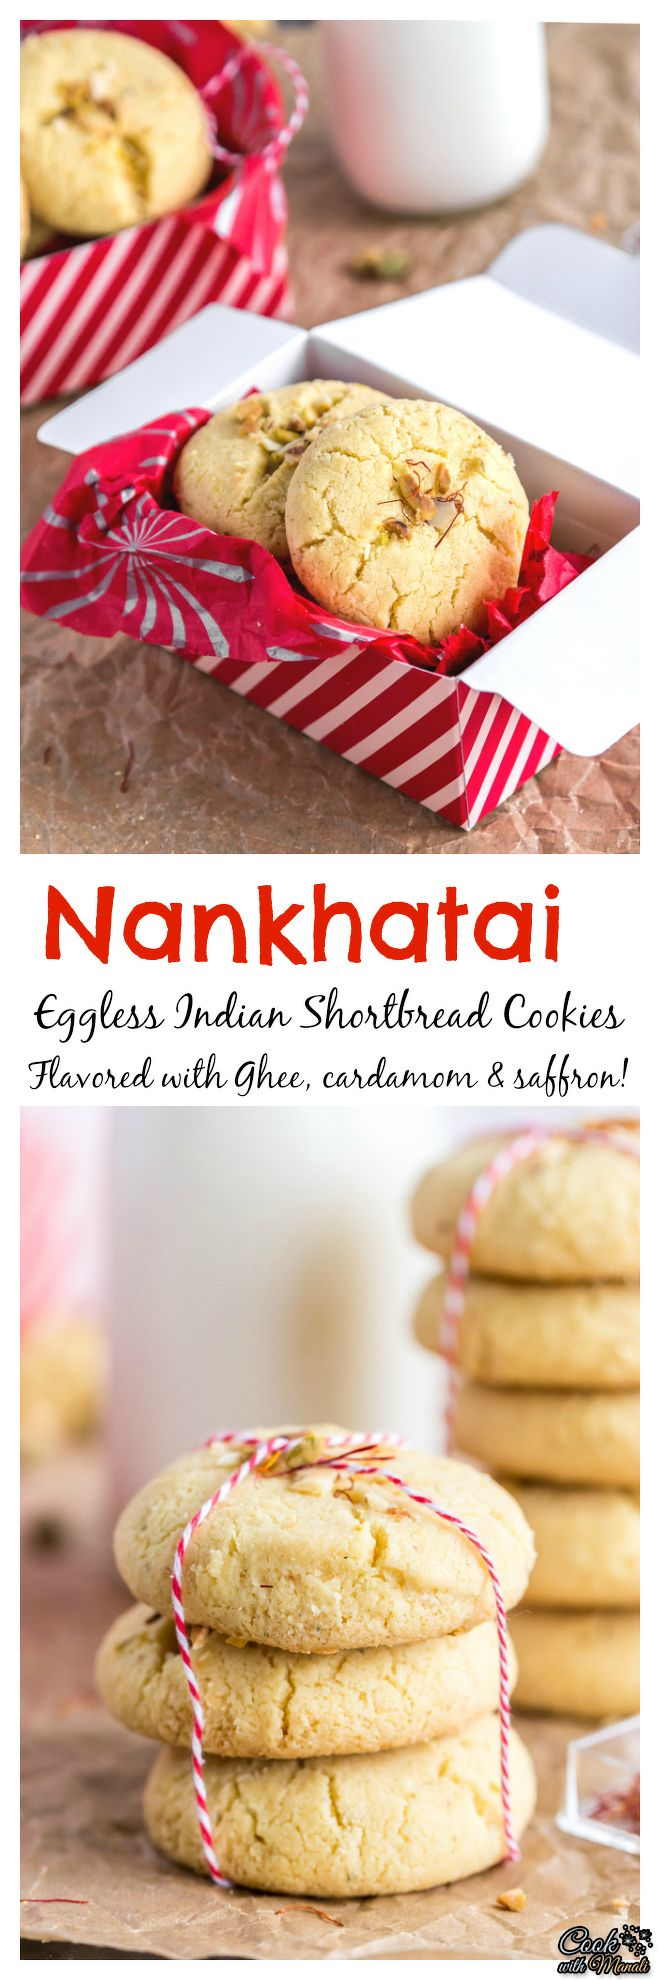 Nankhatai-CollageEggless Indian Shortbread Cookies – Nankhatai are very popular during the festive season. These are flavored with ghee, cardamom and saffron and will melt in your mouth! #cookies #eggless #indian #cardamom #saffrom #holidays